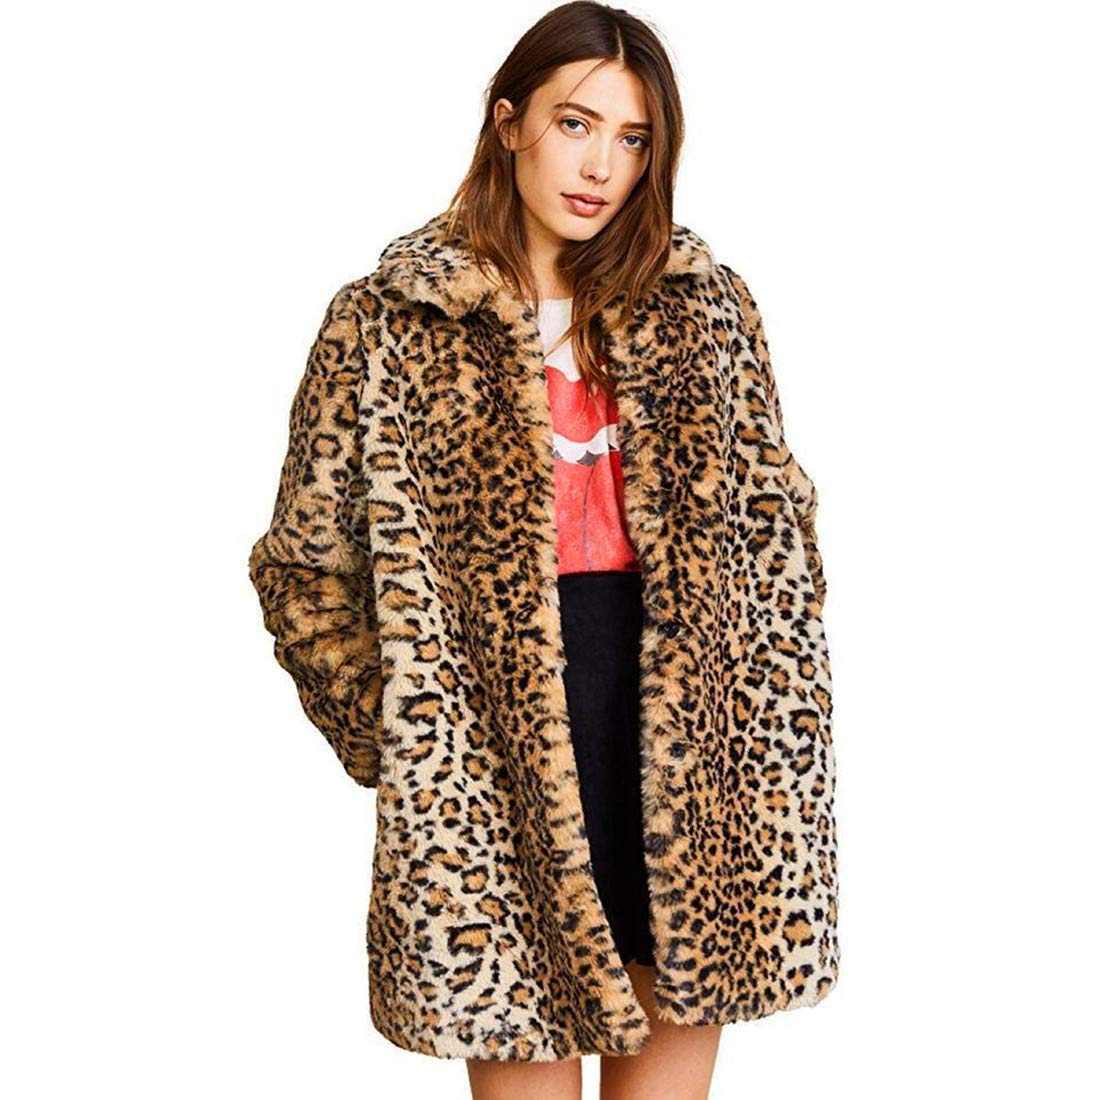 Comeon  — Warm Long Sleeve Parka Faux Fur Coat Overcoat Fluffy Top Jacket Leopard Brown —  $38.99